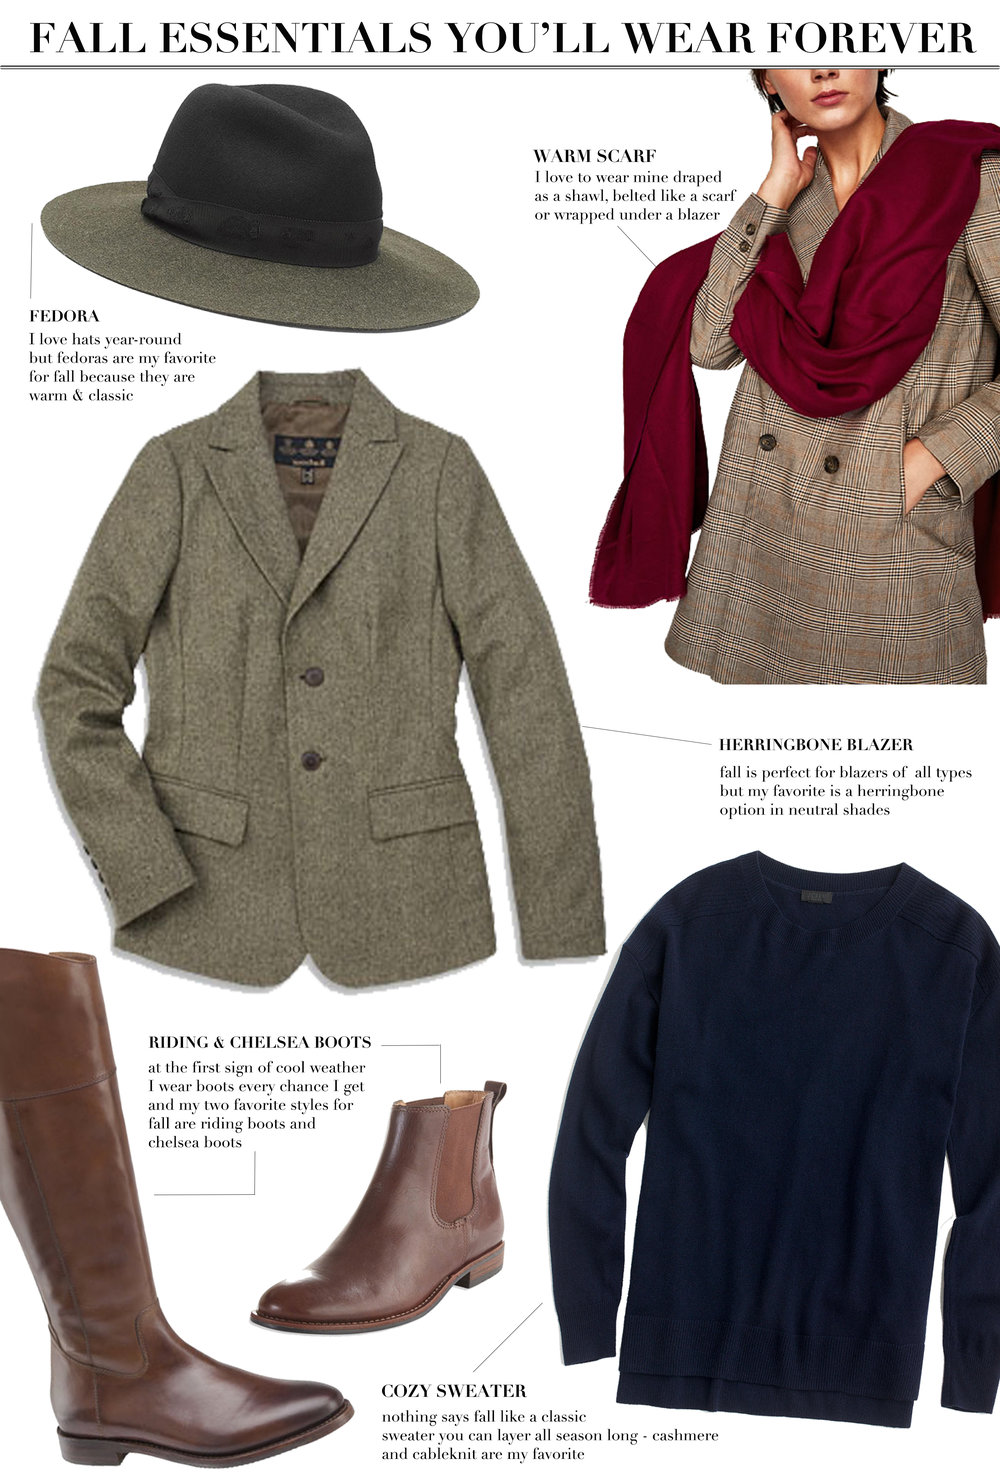 fall_essentials_herringbone_blazer__fedora_cashmere_sweater_everlane_cashmere_jcrew_cashmere_chelsea_boots_riding_boots.jpg